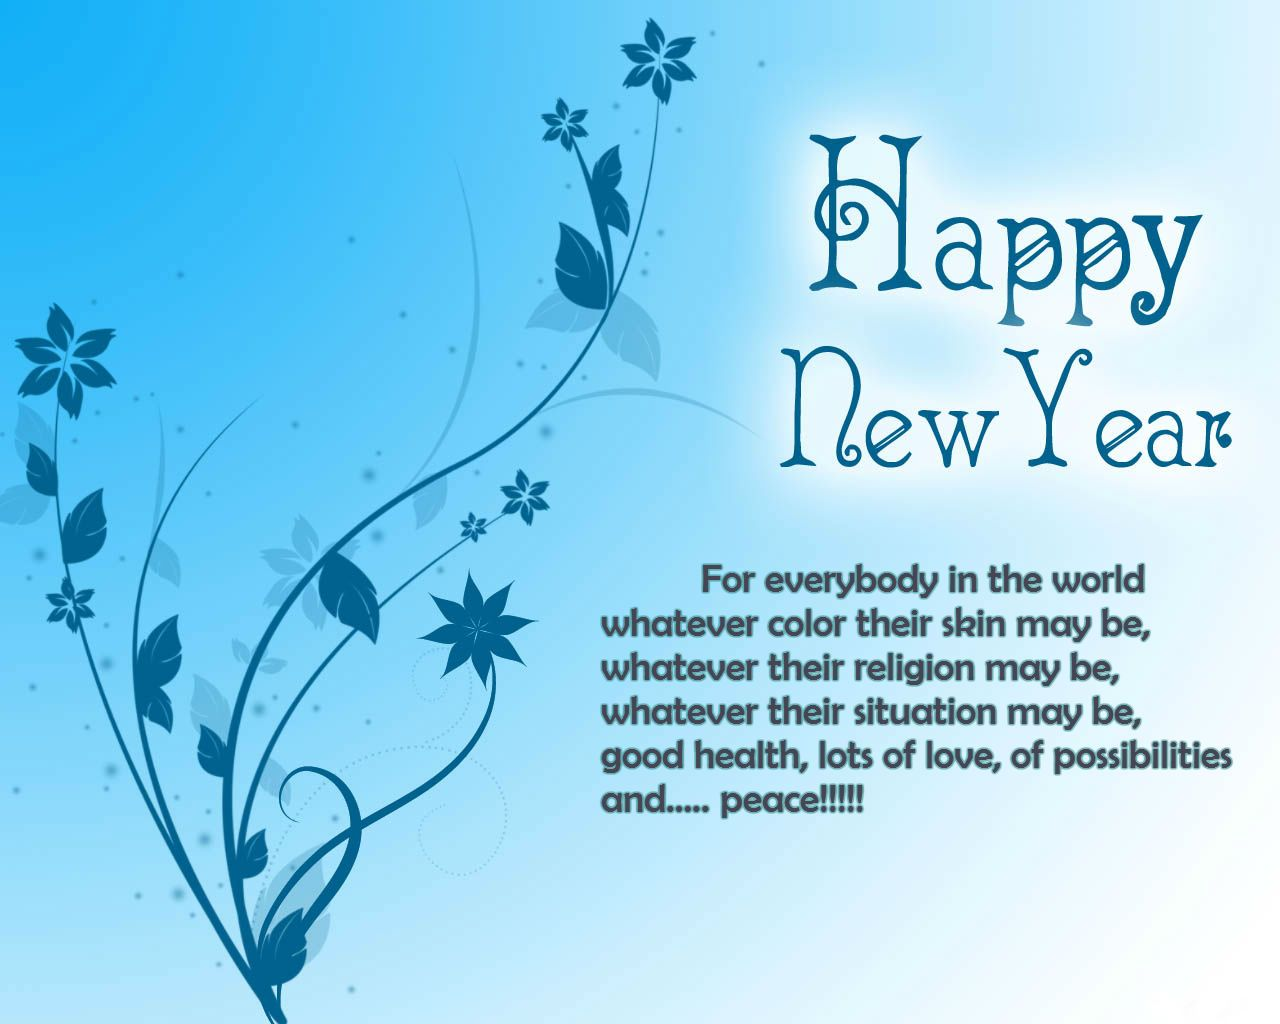 top class new year quotes 2015 latest greeting pictures new year 2017 year 2016 happy new year 2014 happy new year poem